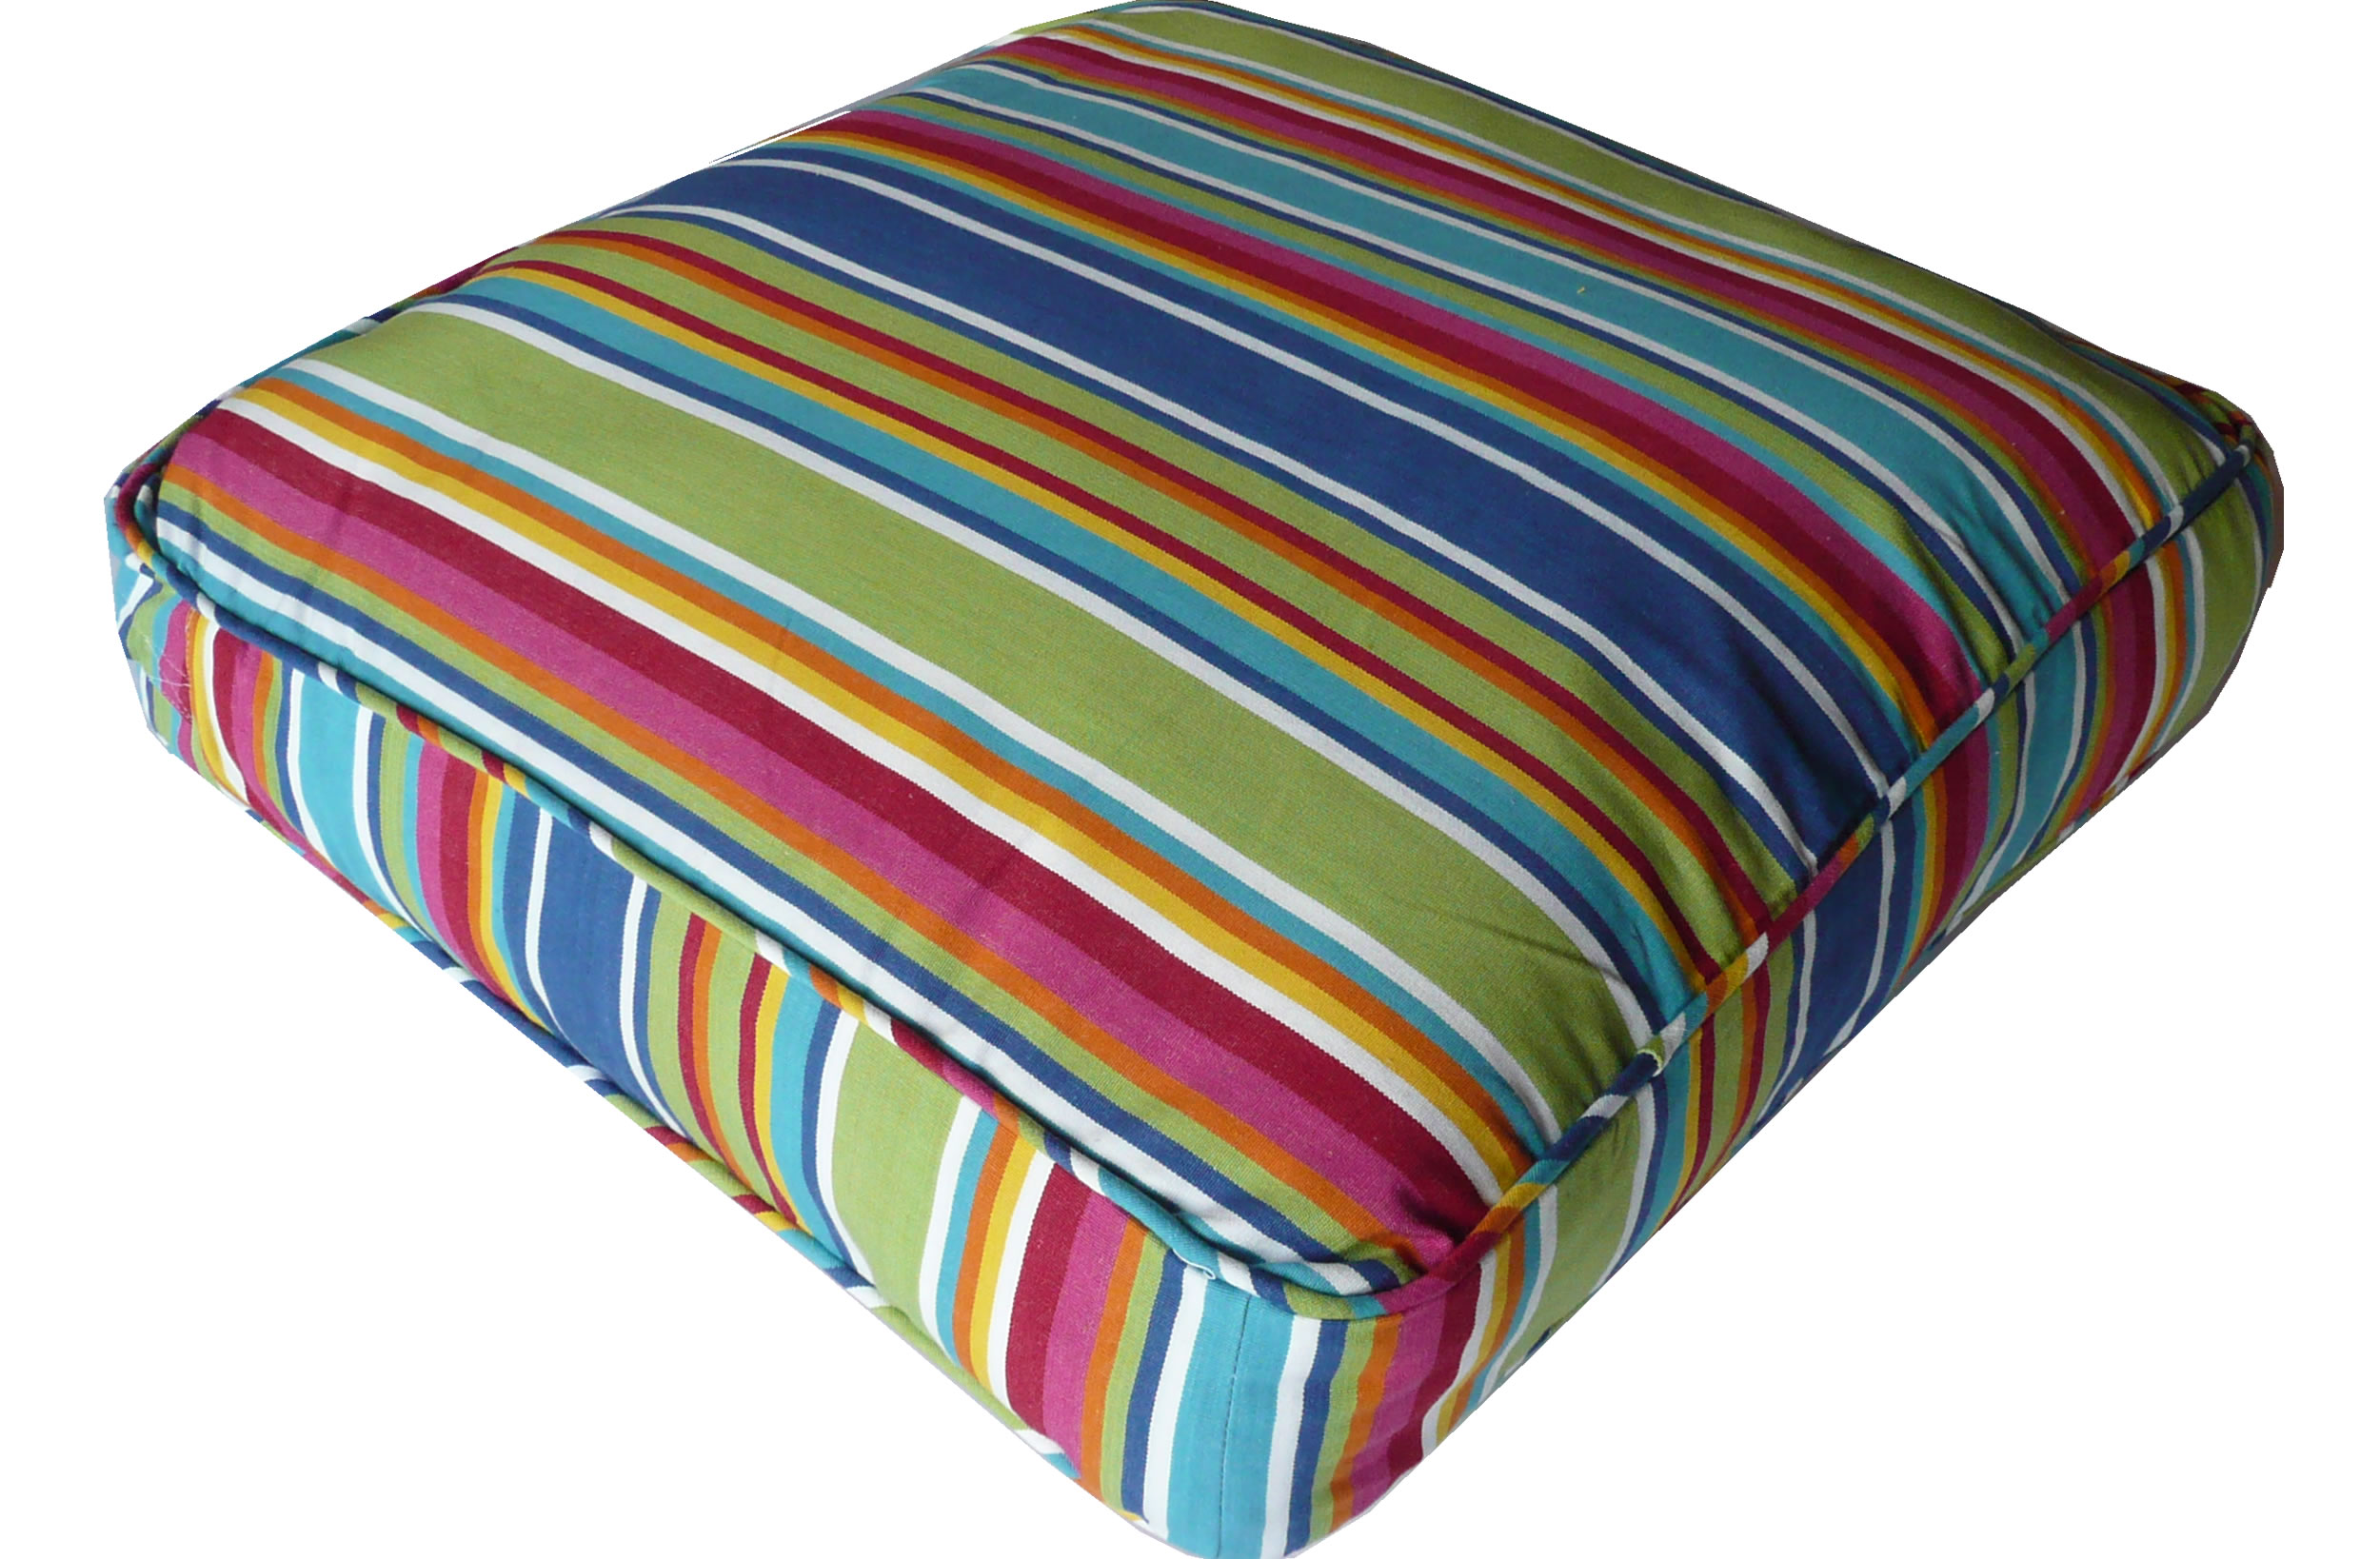 blue, green, red - Large Floor Cushions